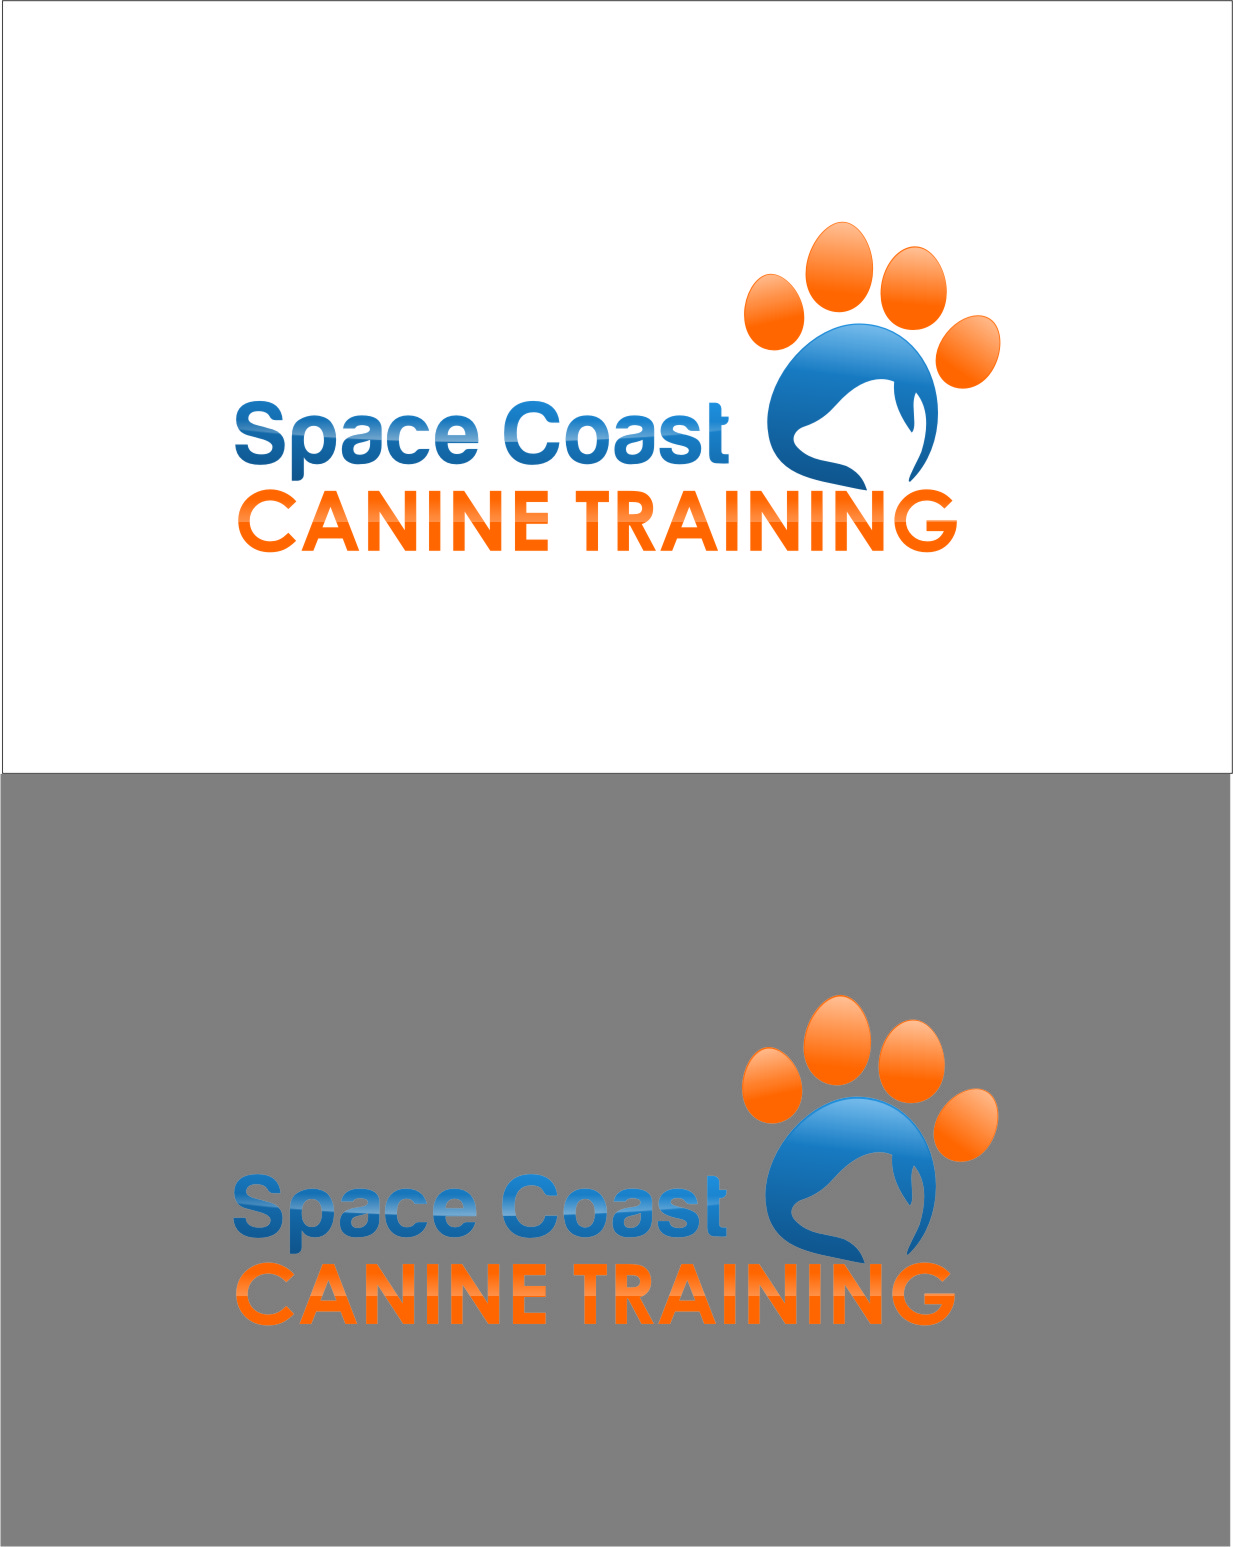 Logo Design by Ngepet_art - Entry No. 59 in the Logo Design Contest Creative Logo Design for Space Coast Canine Training.